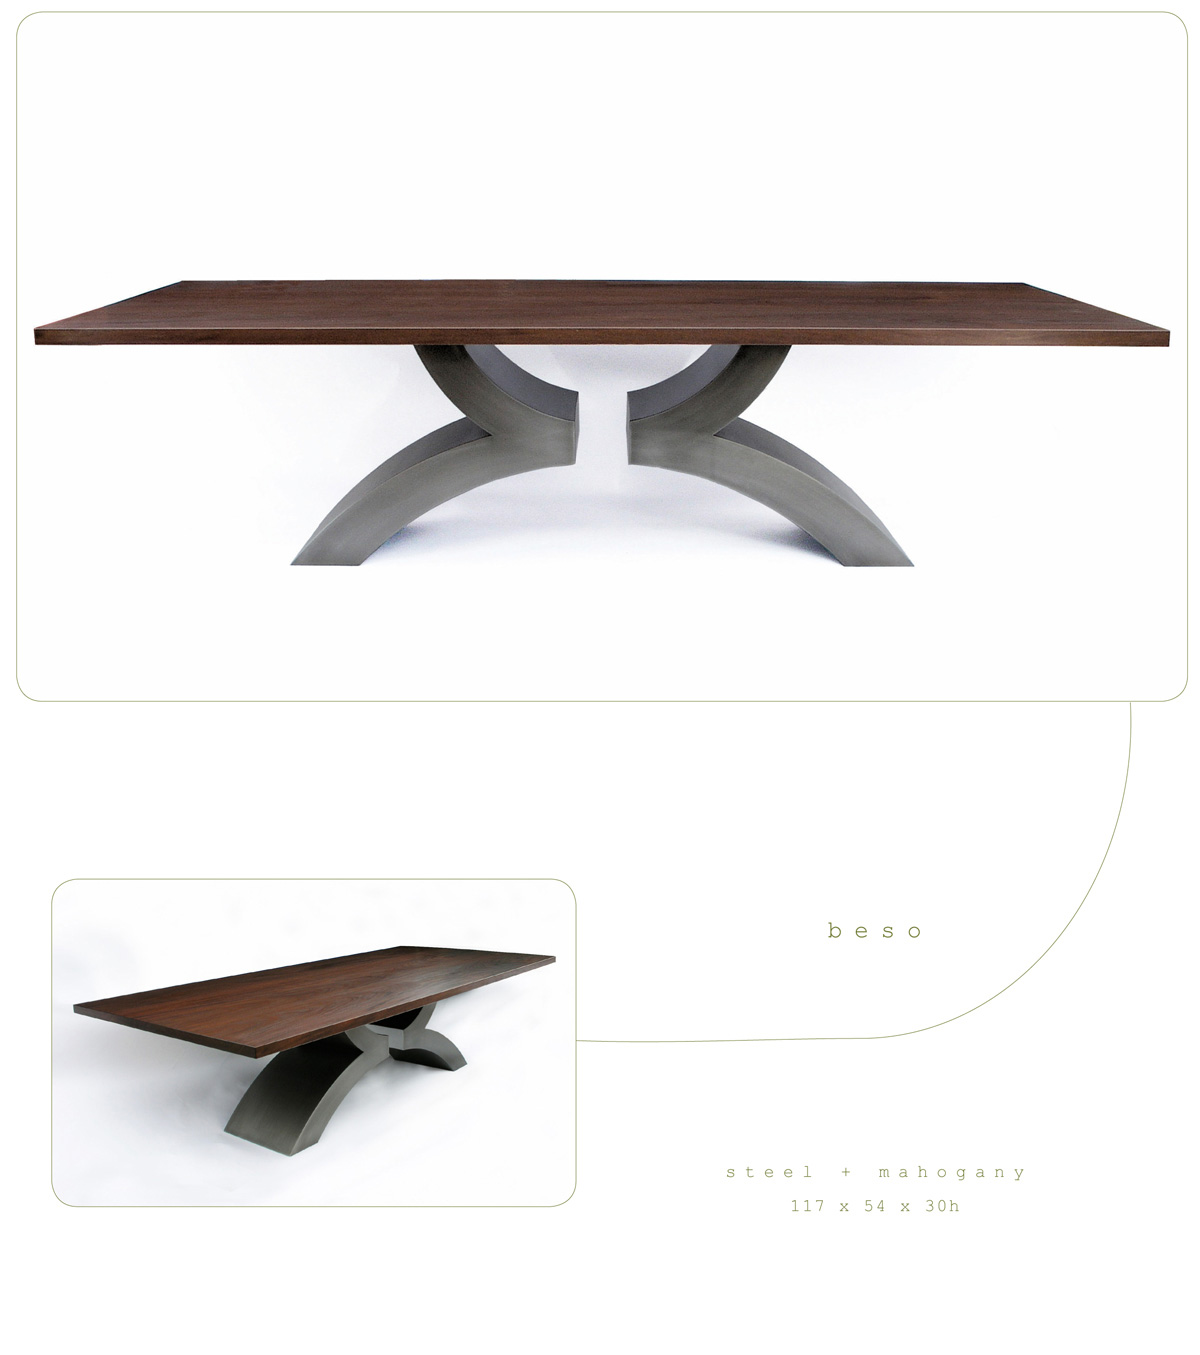 Beso is a contemporary dining table made out of steel and mahogany measuring 117 x 54 x 30 inches made by Chad Manley Design.